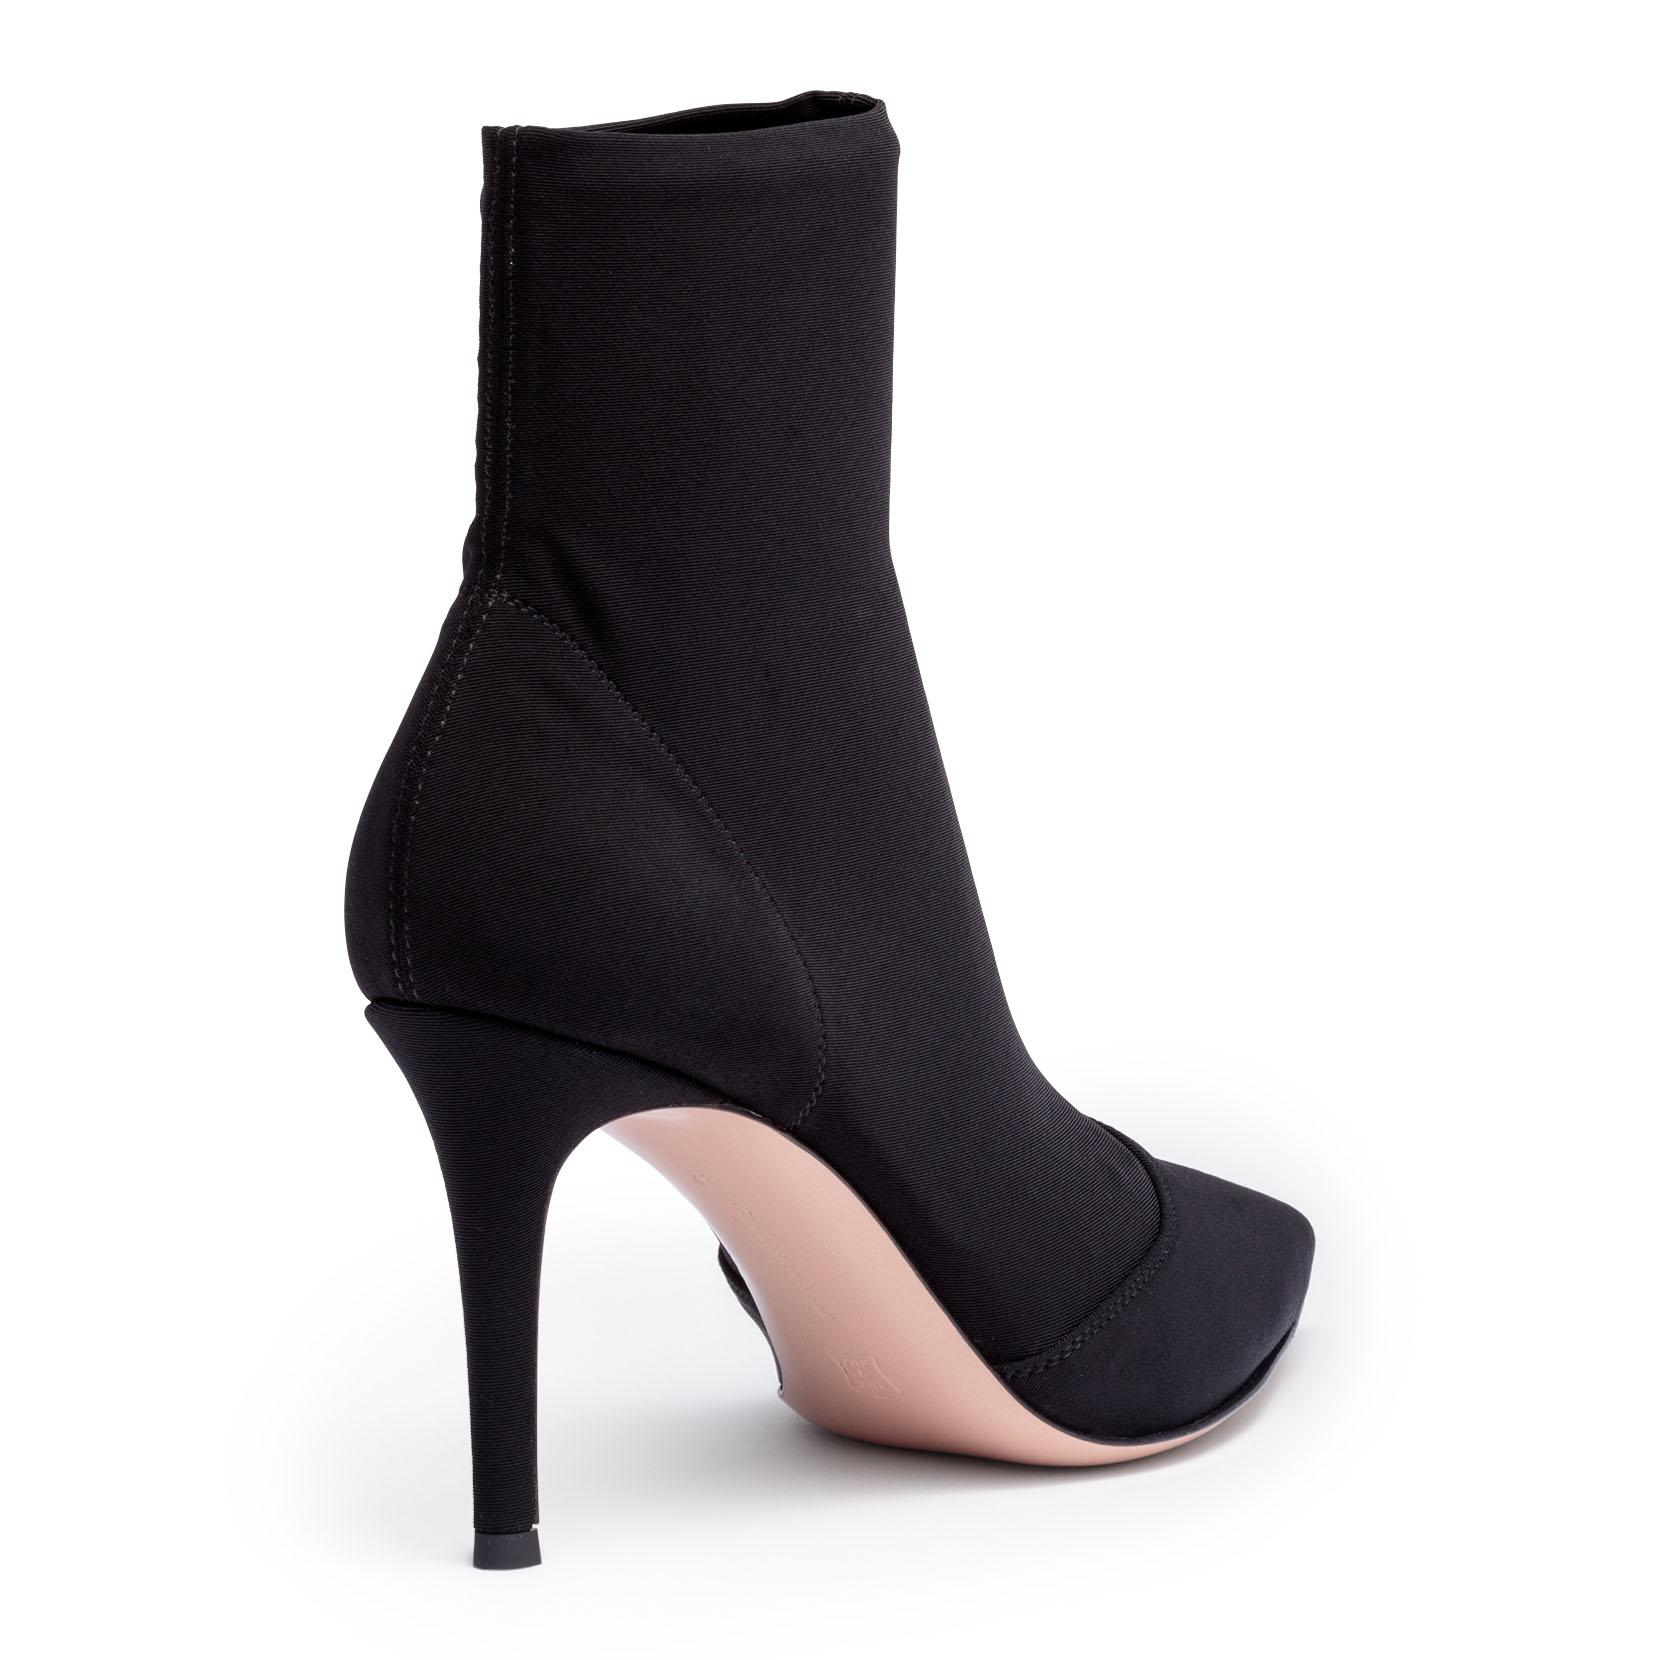 Elite 85 black stretch ankle boots Gianvito Rossi WJGvG